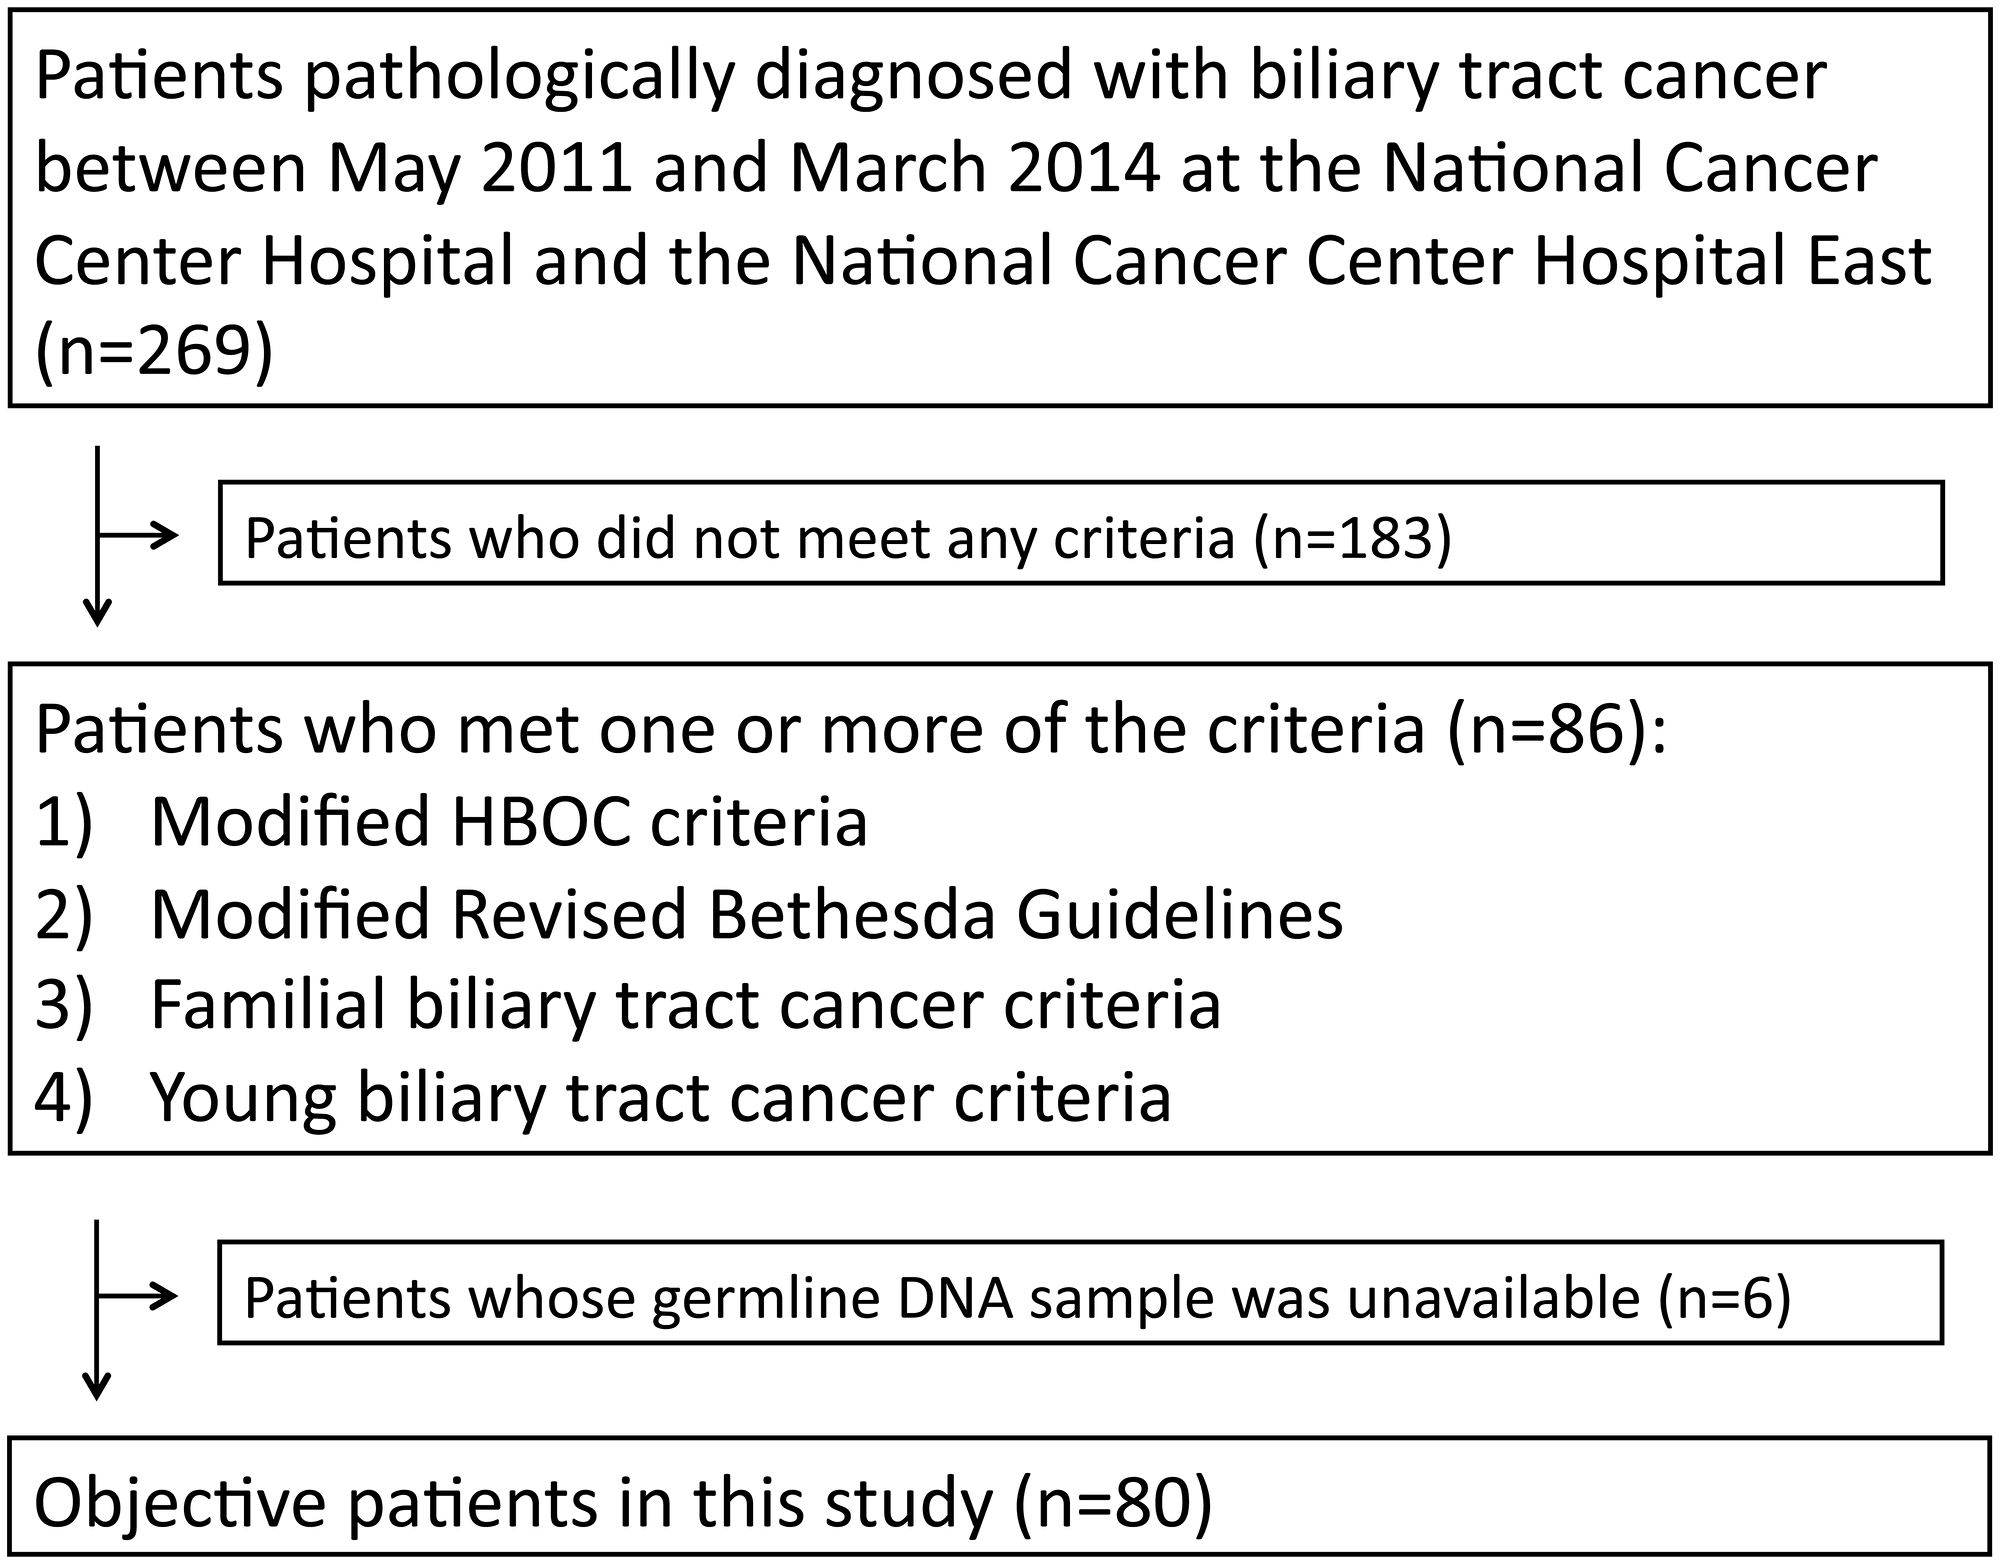 Number of patients meeting criteria for inclusion in the HBOC group, Lynch group, Familial BTC group, and Young BTC group, respectively.